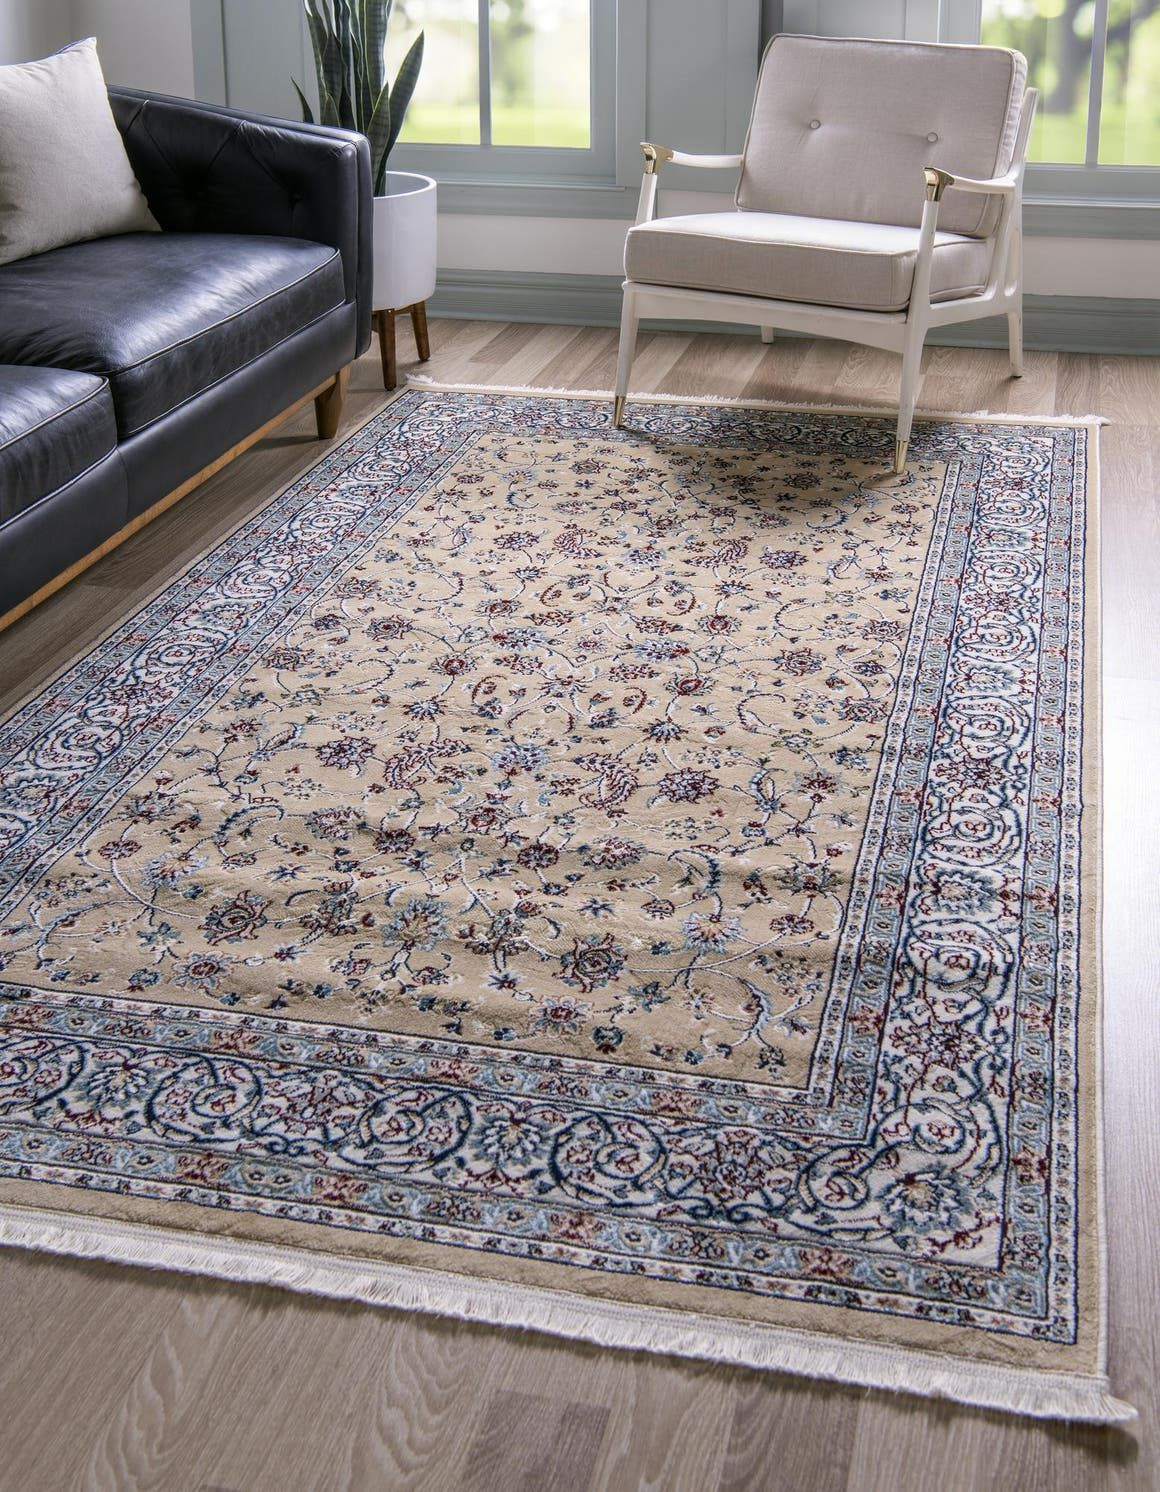 Beige Nain Design Area Rug In 2020